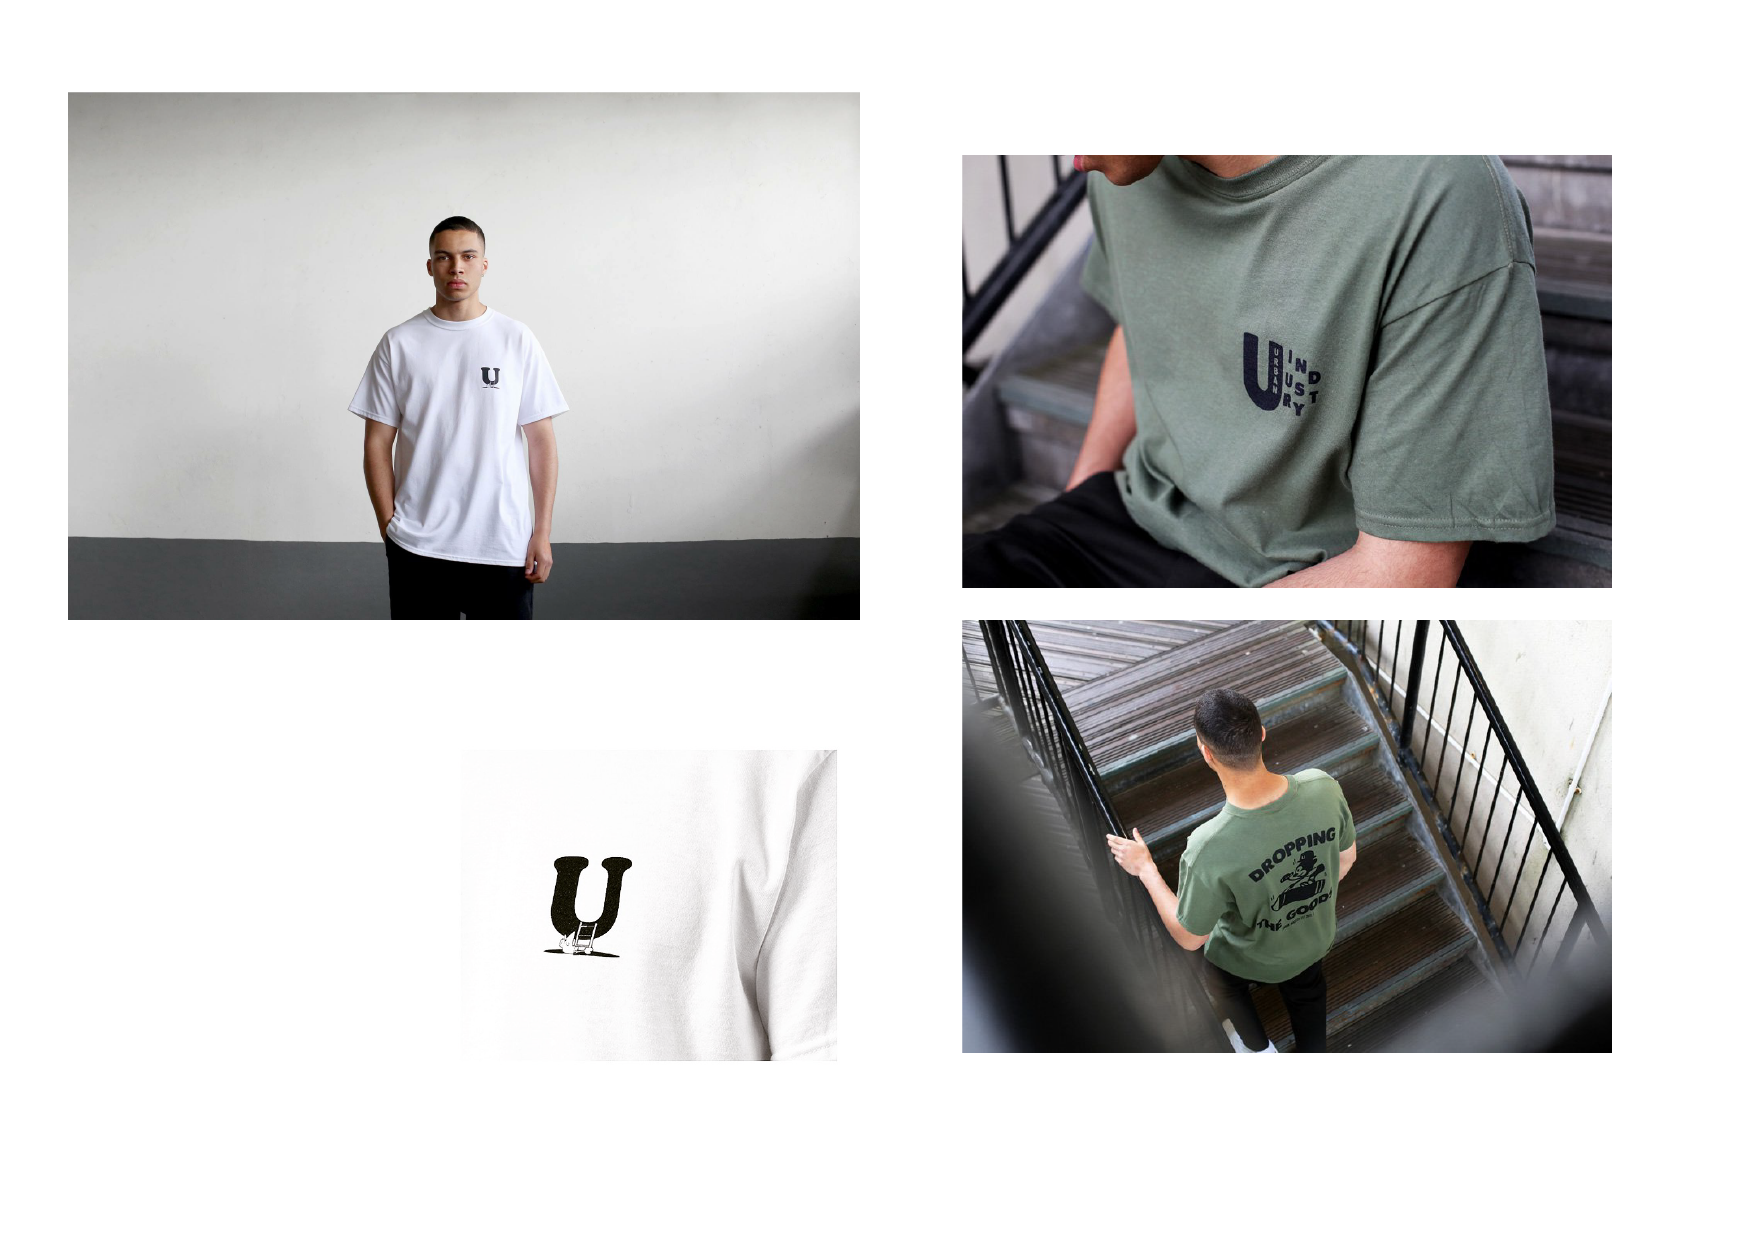 urbanindustry.co.uk daily www